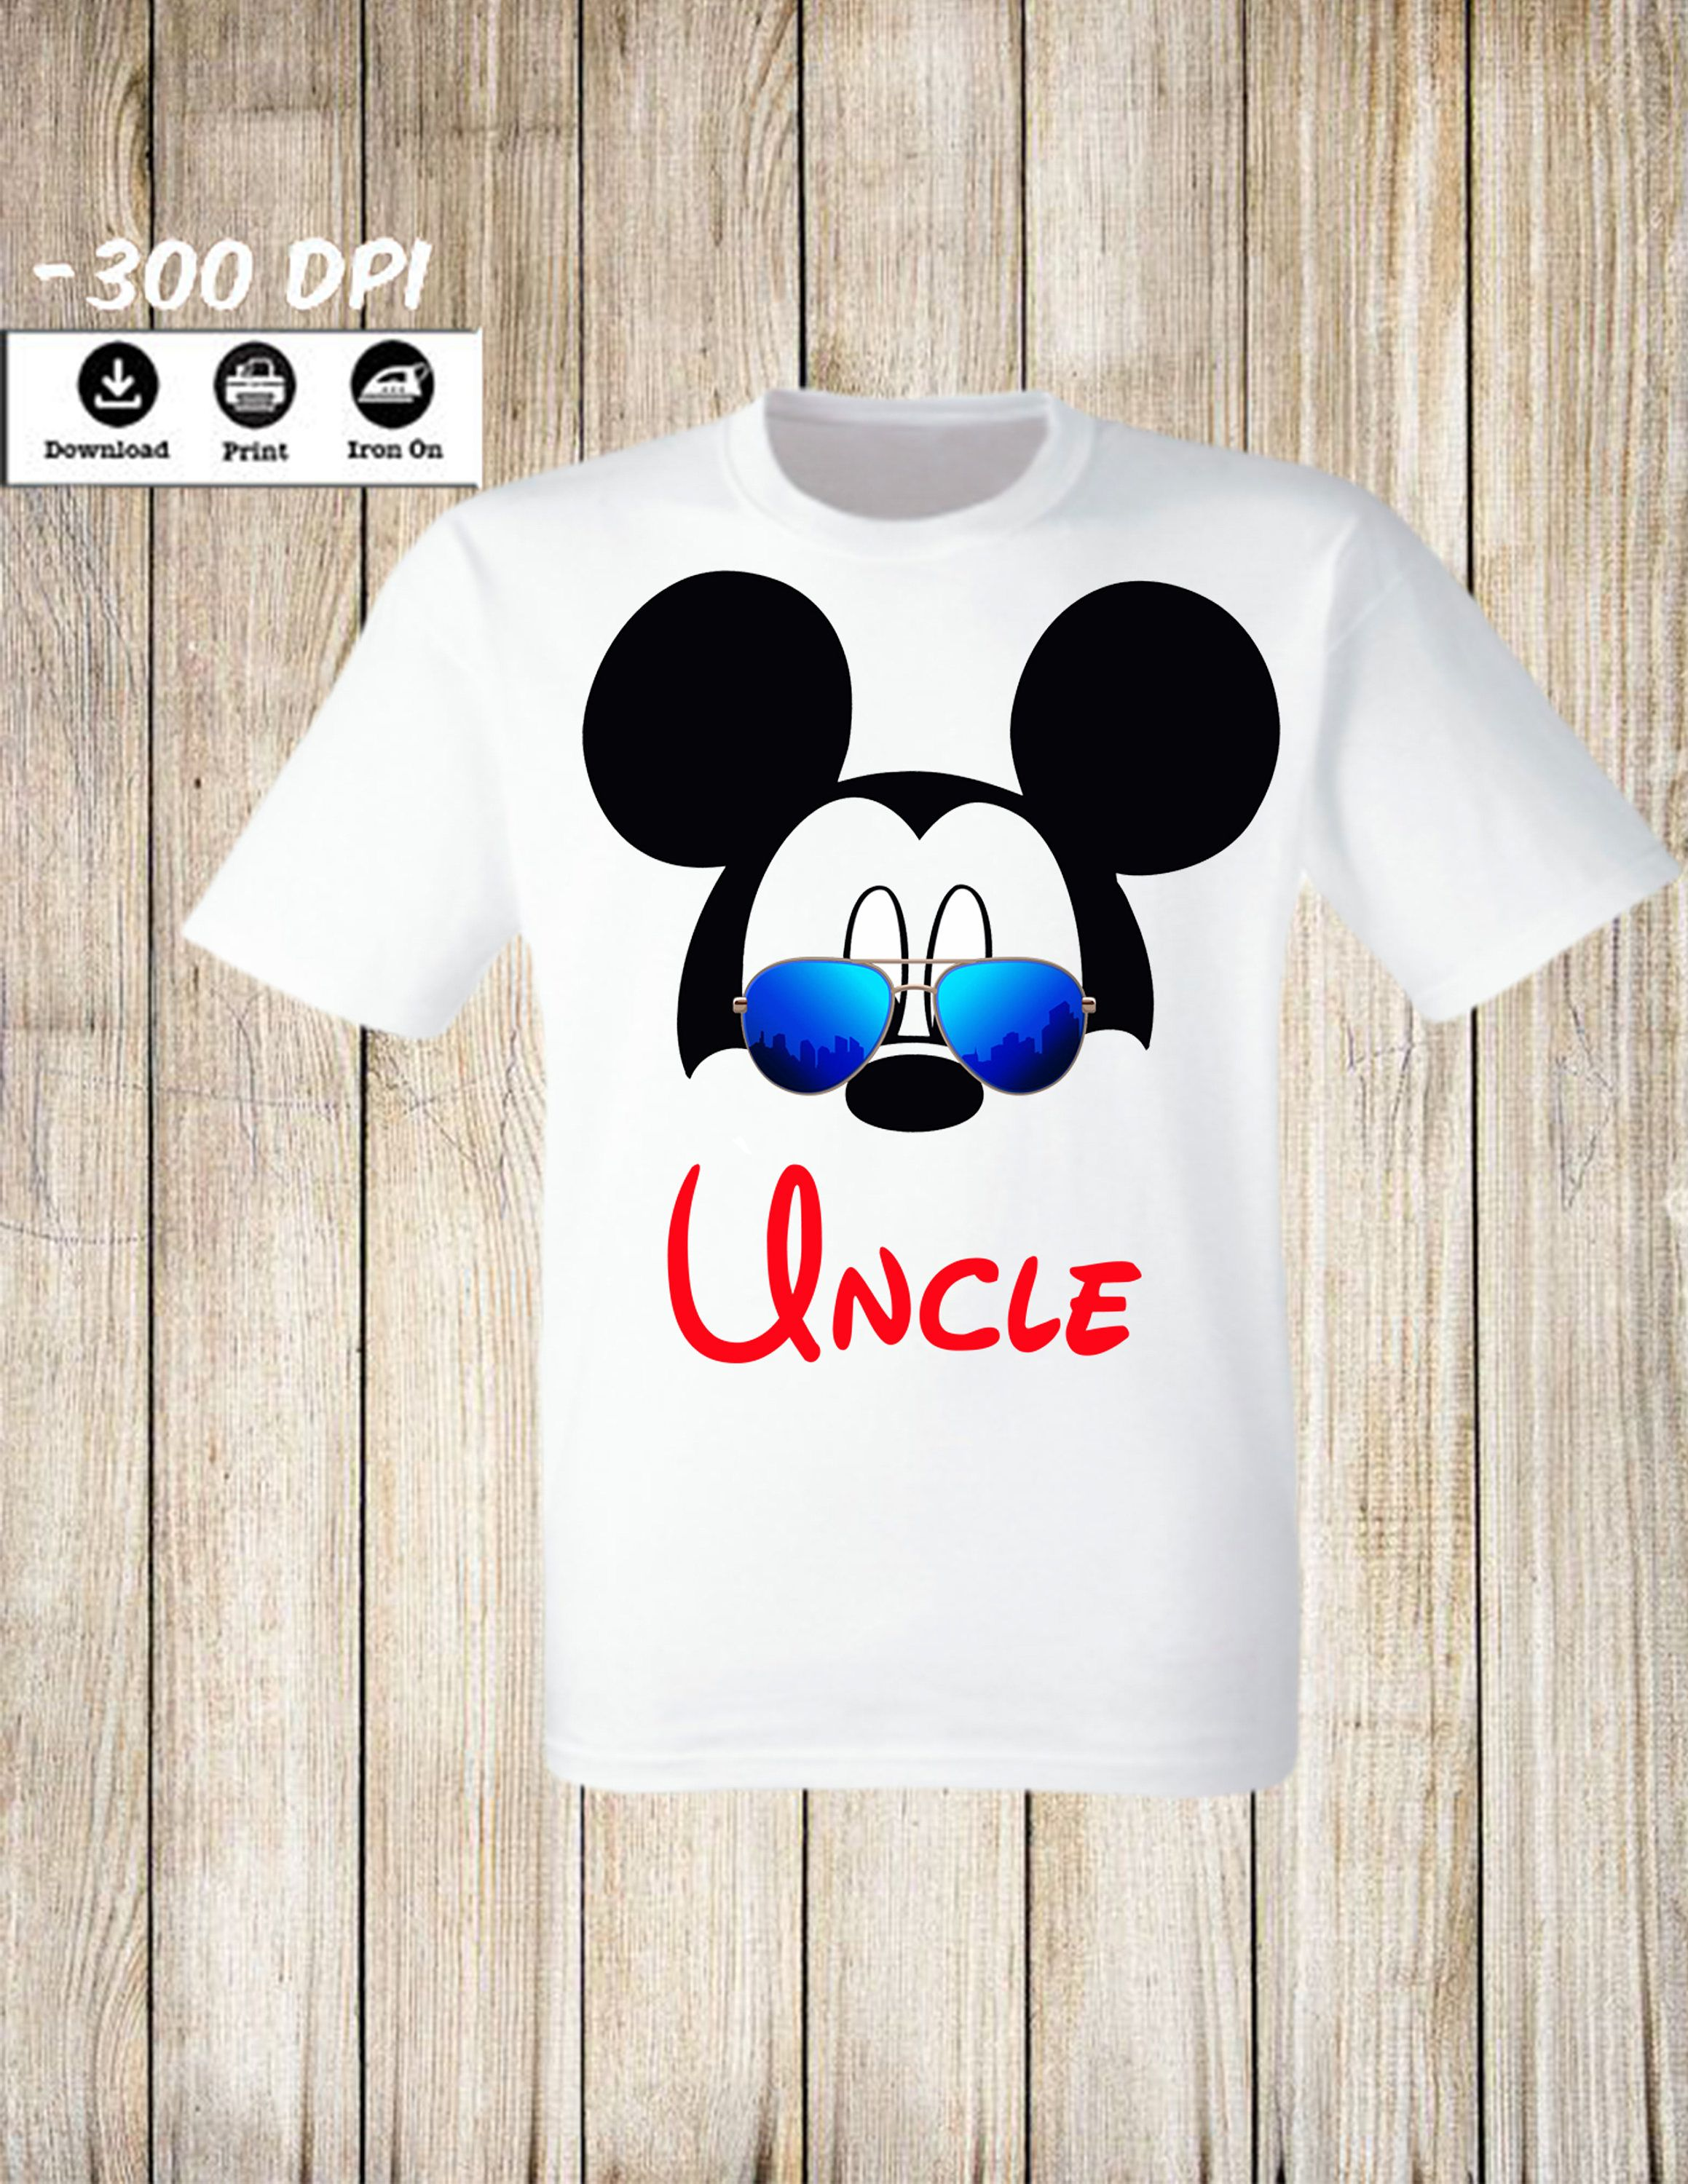 70df2d80 Mickey Minnie Mouse Uncle iron on transfer T Shirt. Mickey Minnie Mouse  Iron on Transfer Family matching set Mickey Birthday party image by ...